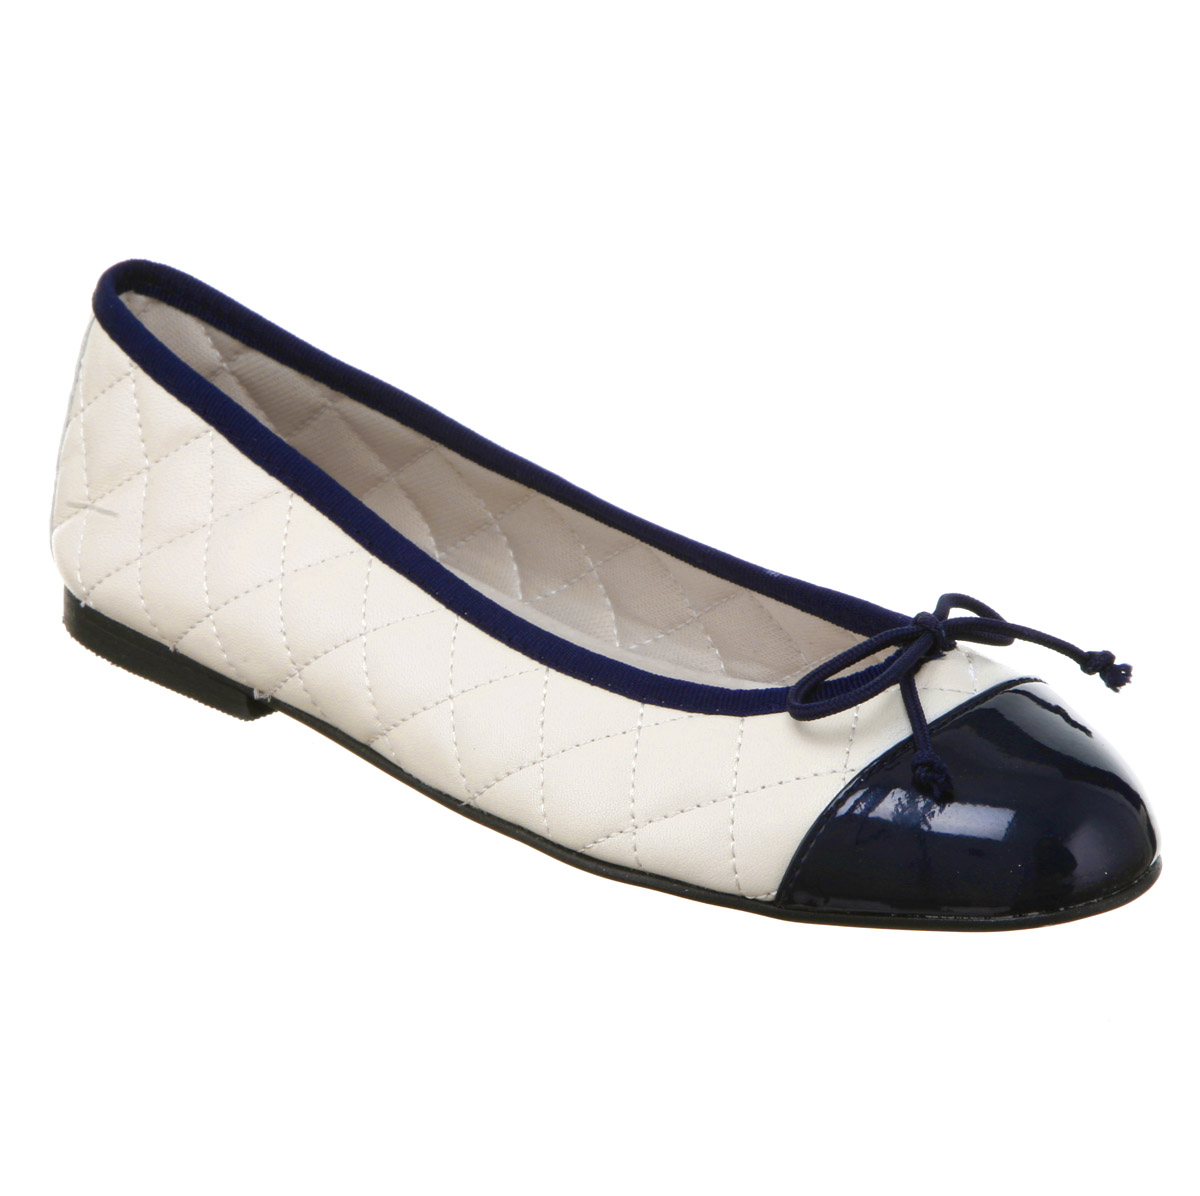 Navy Patent Flat Shoes